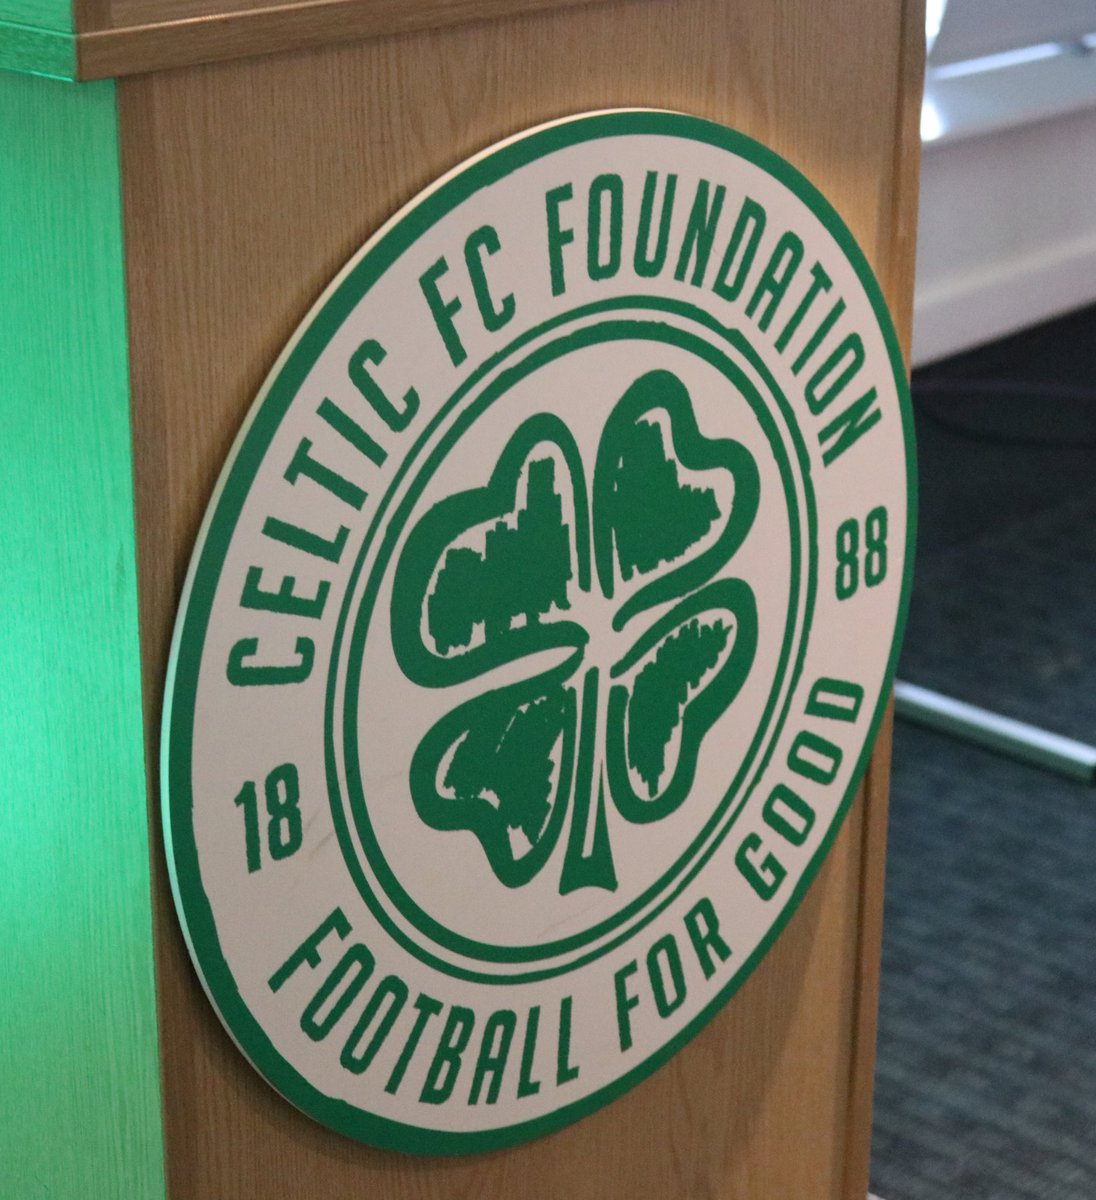 hight resolution of celtic fc foundation on twitter we re in the number 7 restaurant tonight for our football for good event showcasing the amazing stories of our project